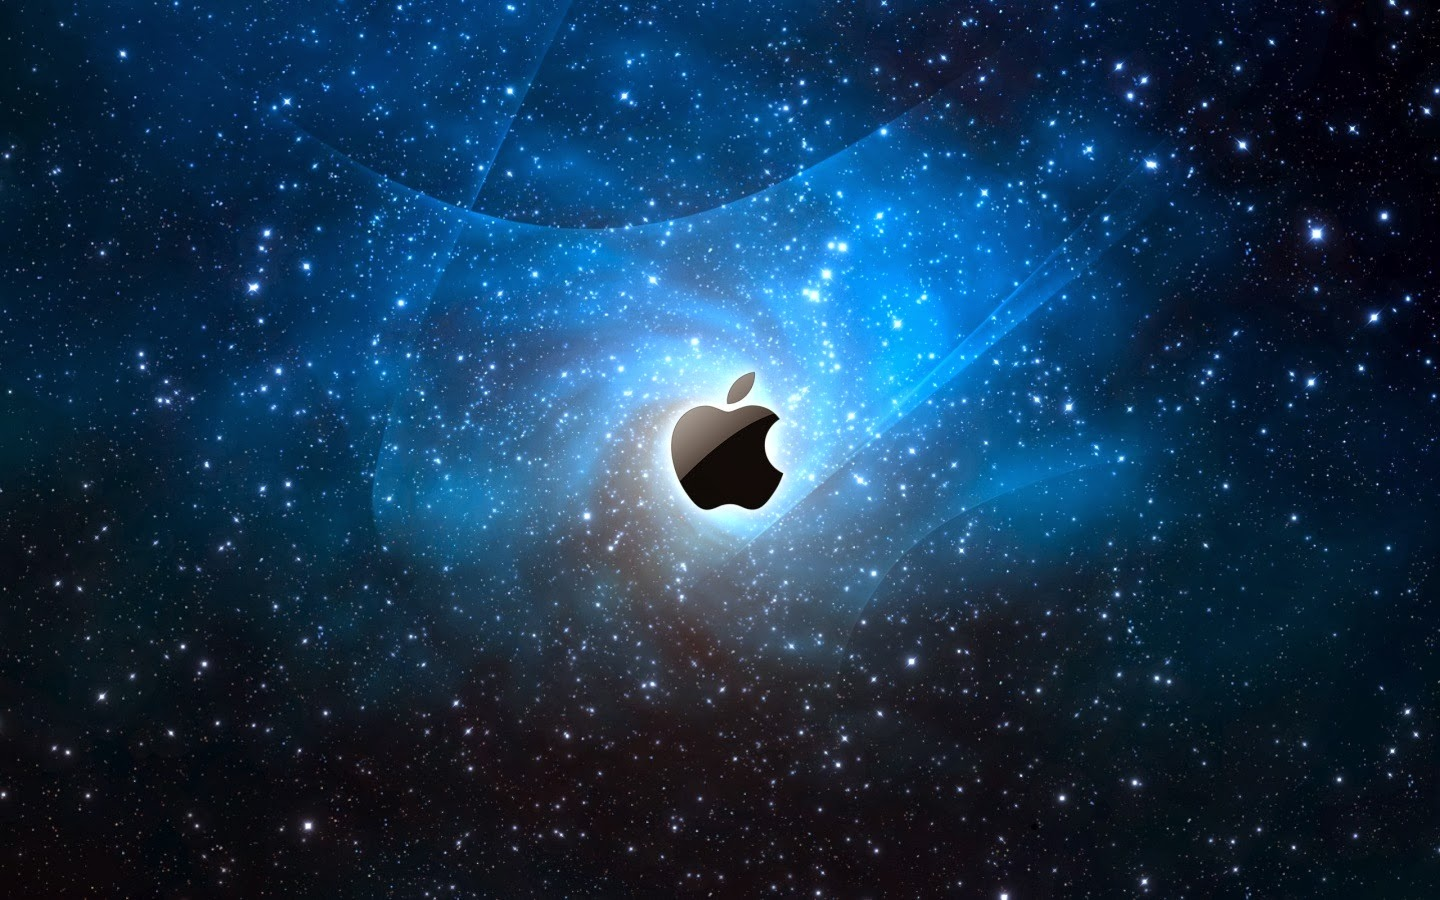 Apple Logo HD Wallpapers Background - Top HD Wallpapers